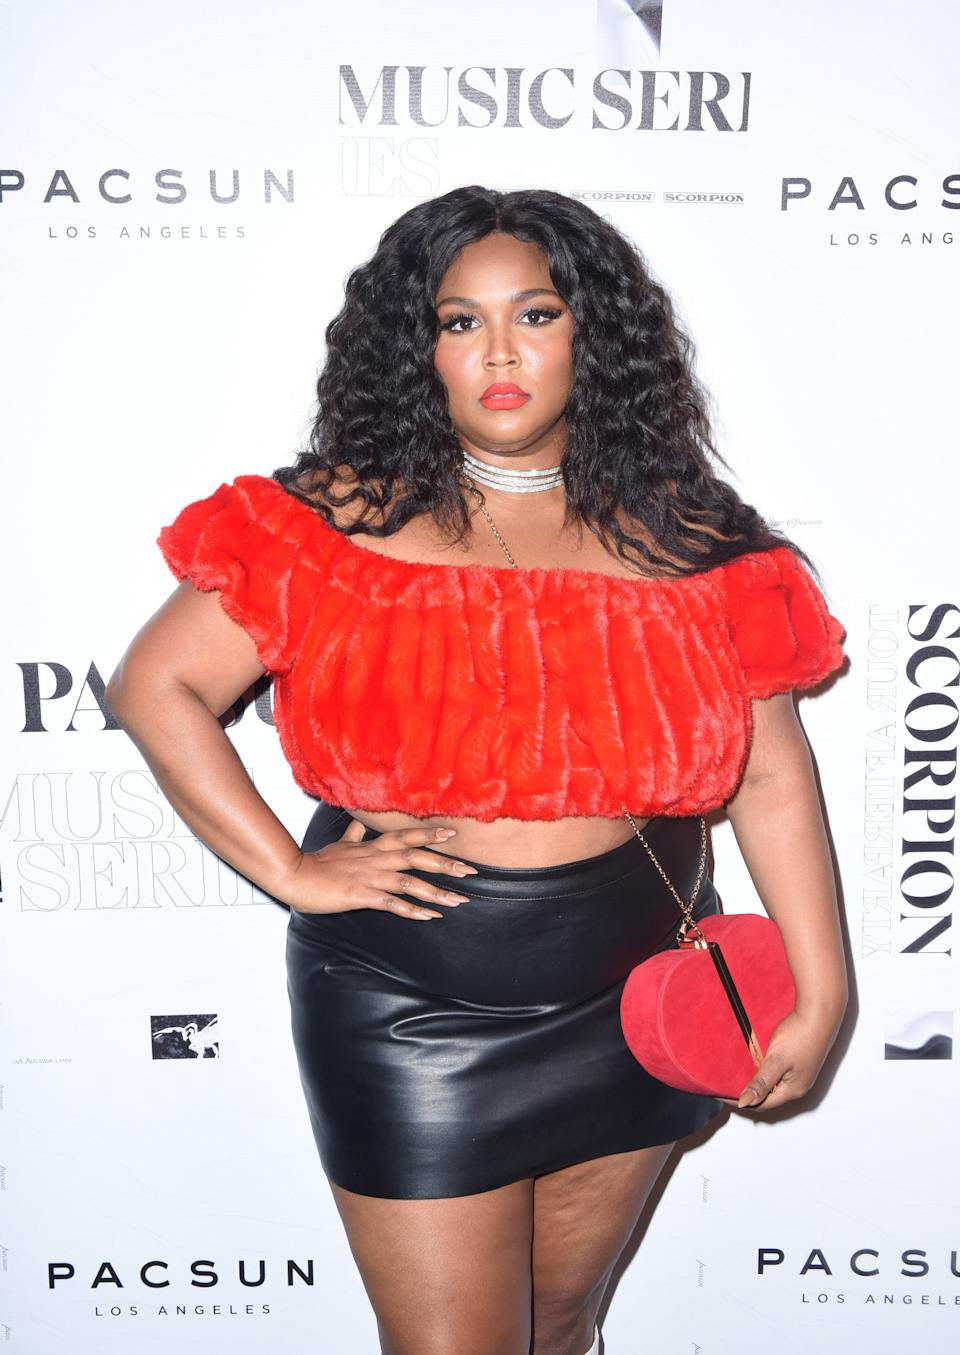 Lizzo opted for a red off-the-shoulder top, black leather skirt, and a matching heart-shaped purse for a night out.